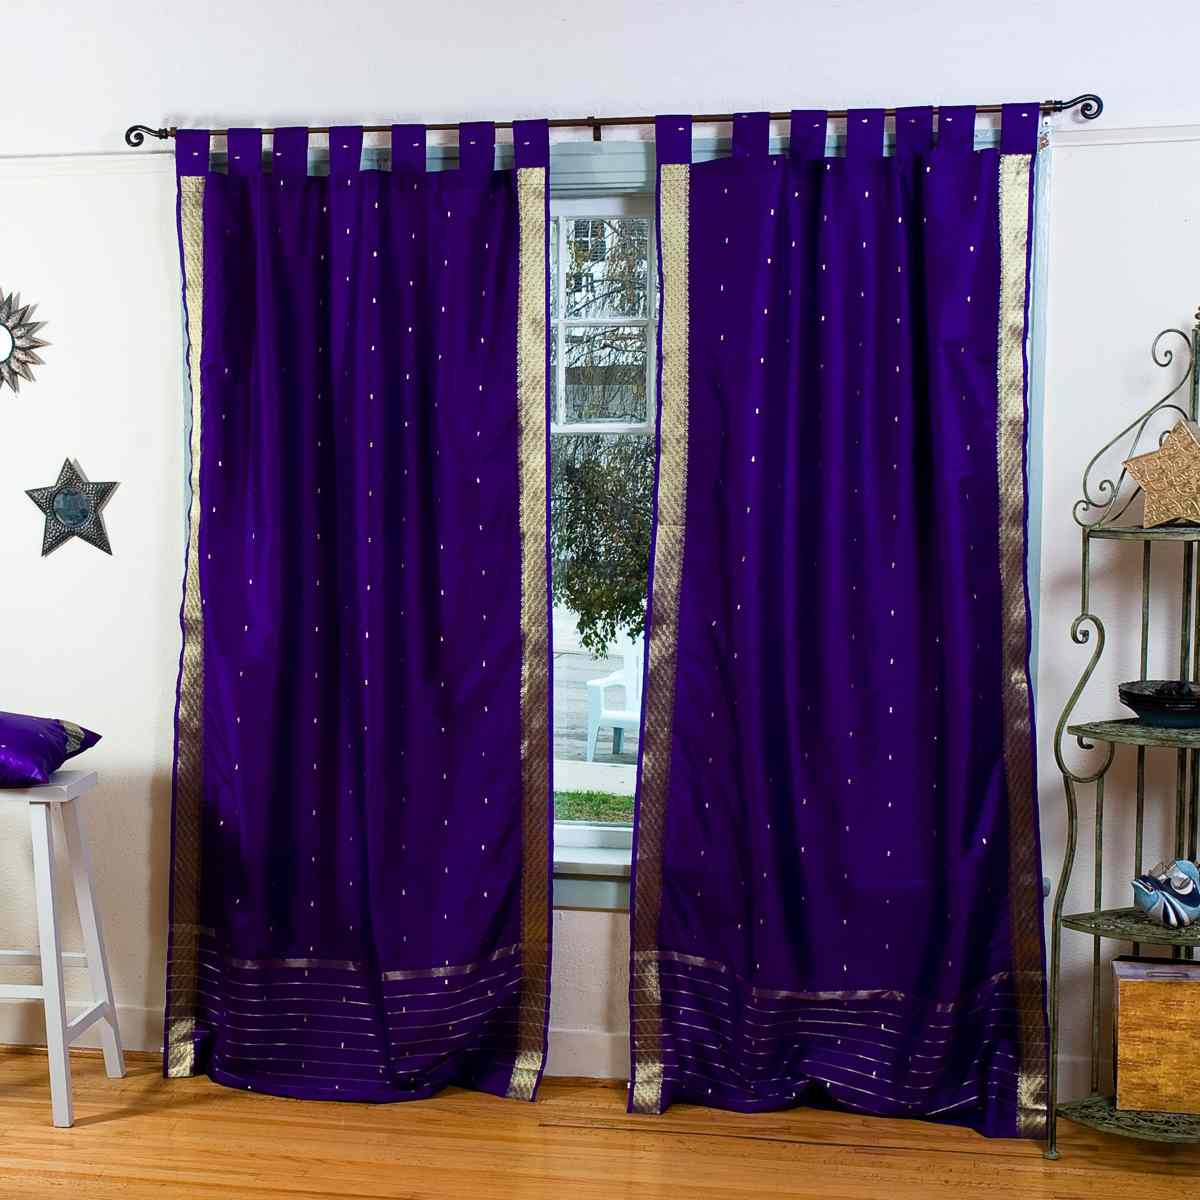 Indian Selections Purple  Tab Top  Sheer Sari Curtain / Drape / Panel  - Piece at Sears.com